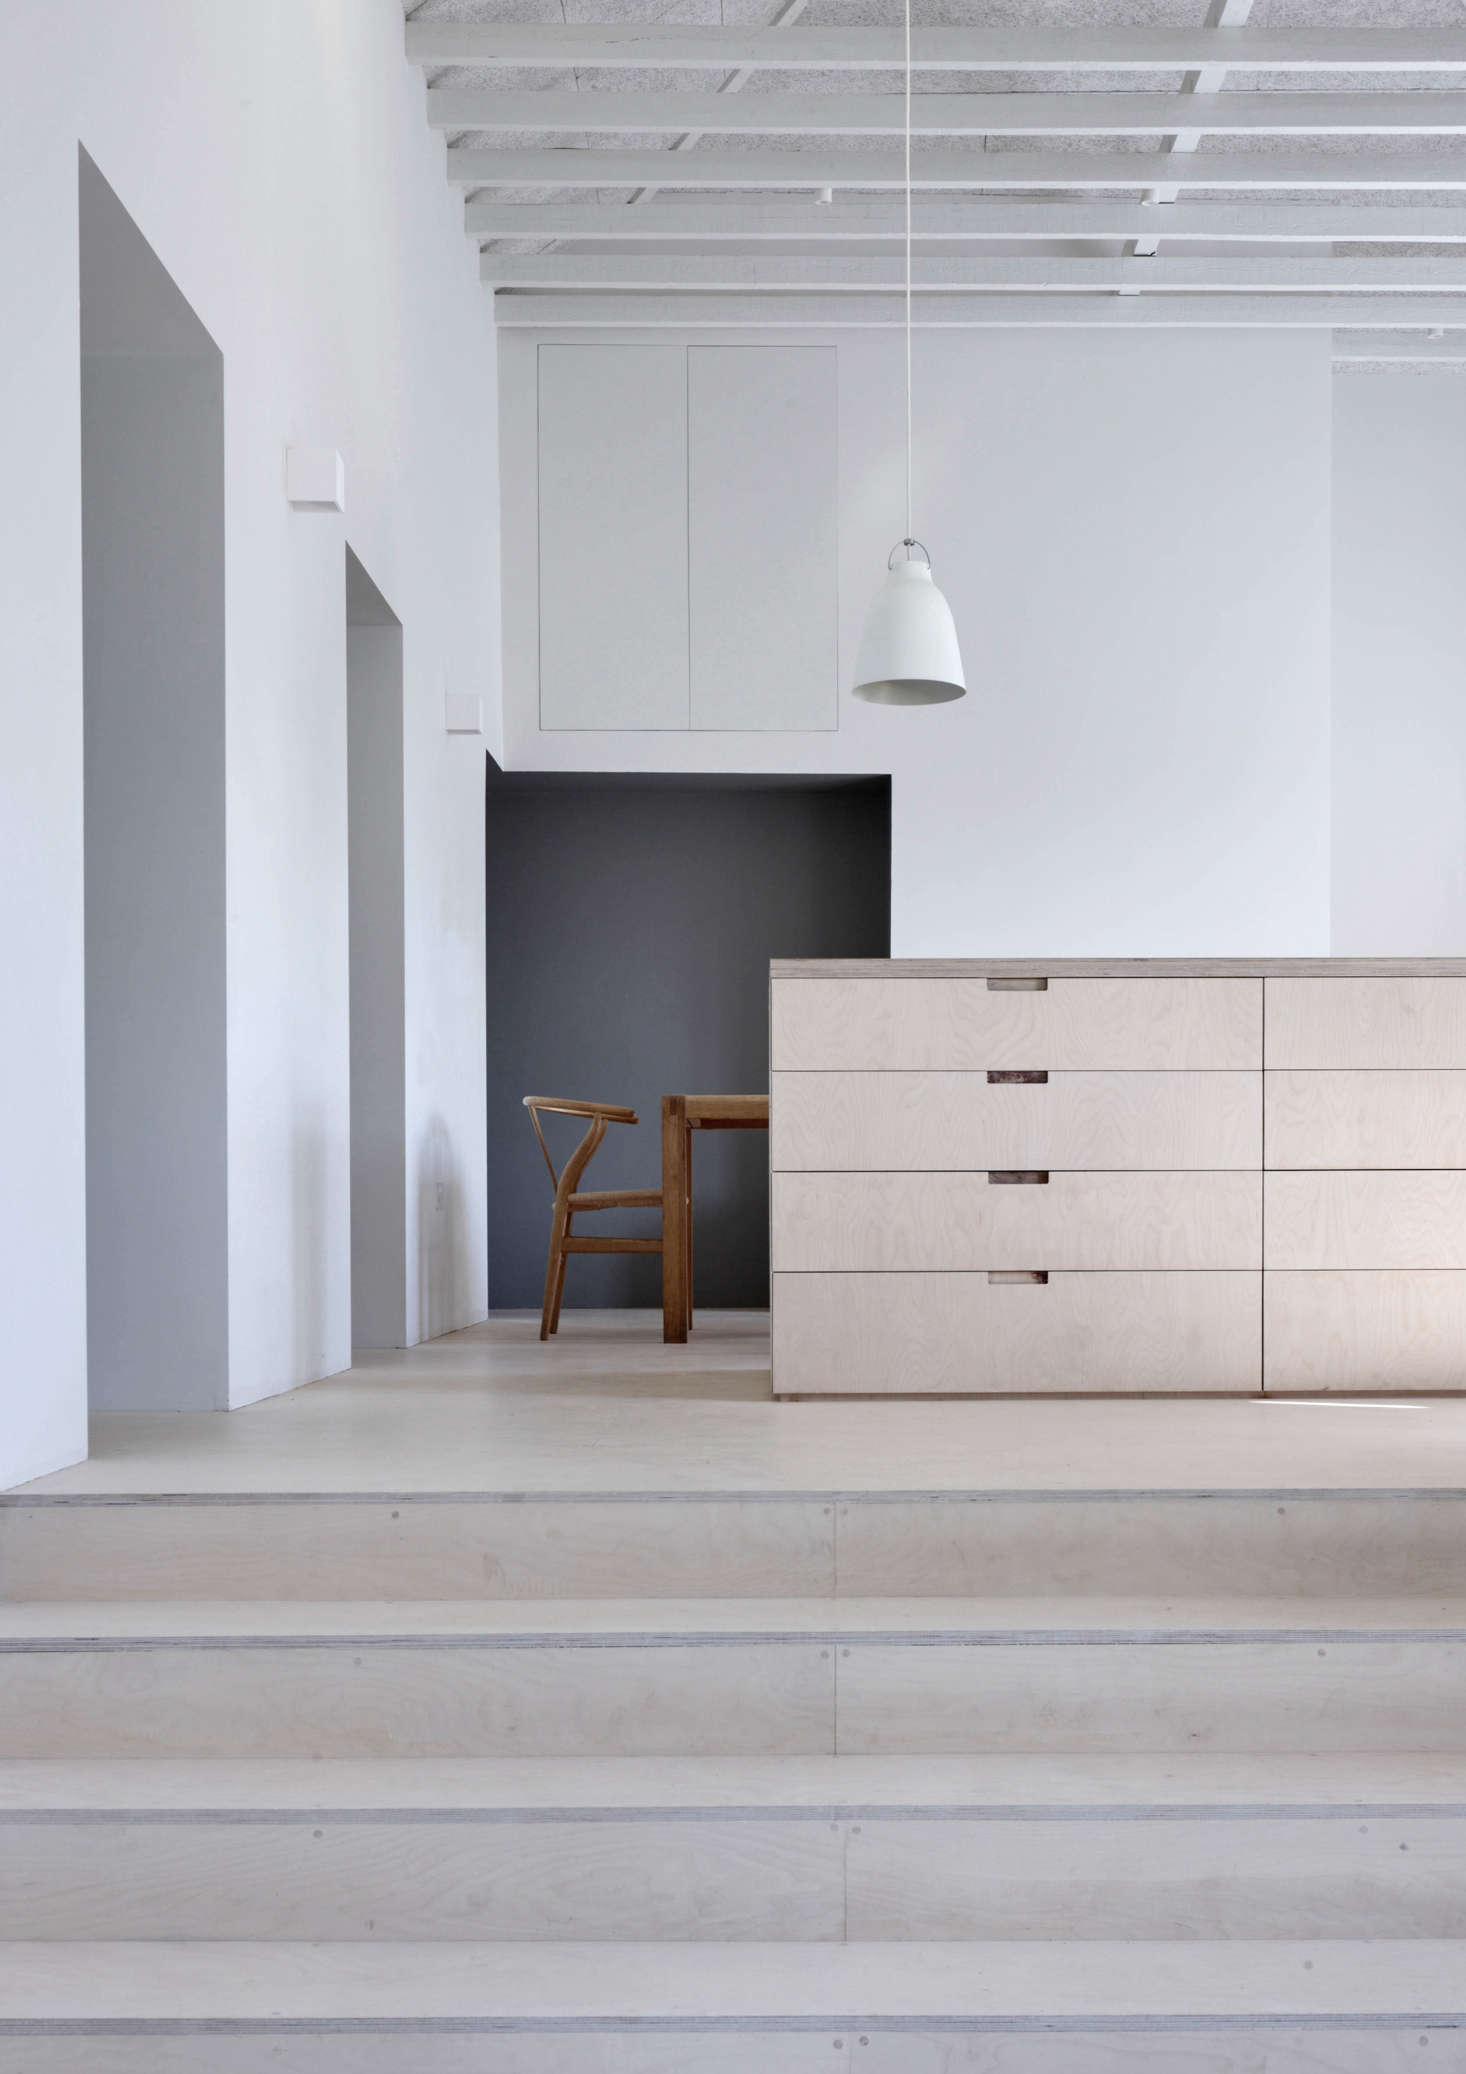 A Caravaggio P3 Pendant Light hangs over the central island, which like the steps, floor, and other cabinets are madeof birch plywood finished with a clear matte oil.